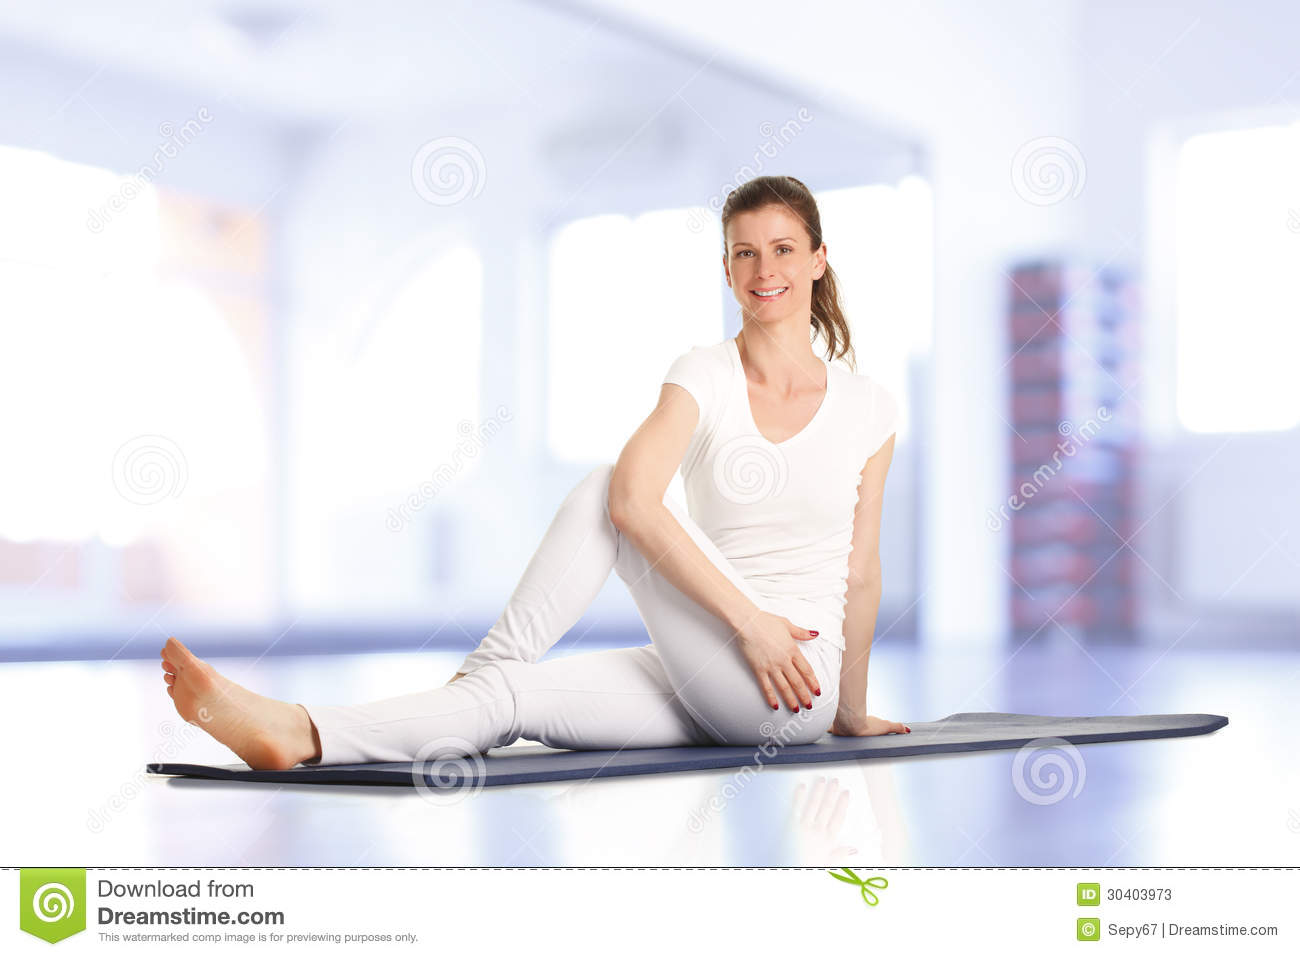 Fitness Trainer Stock Photos Image 30403973